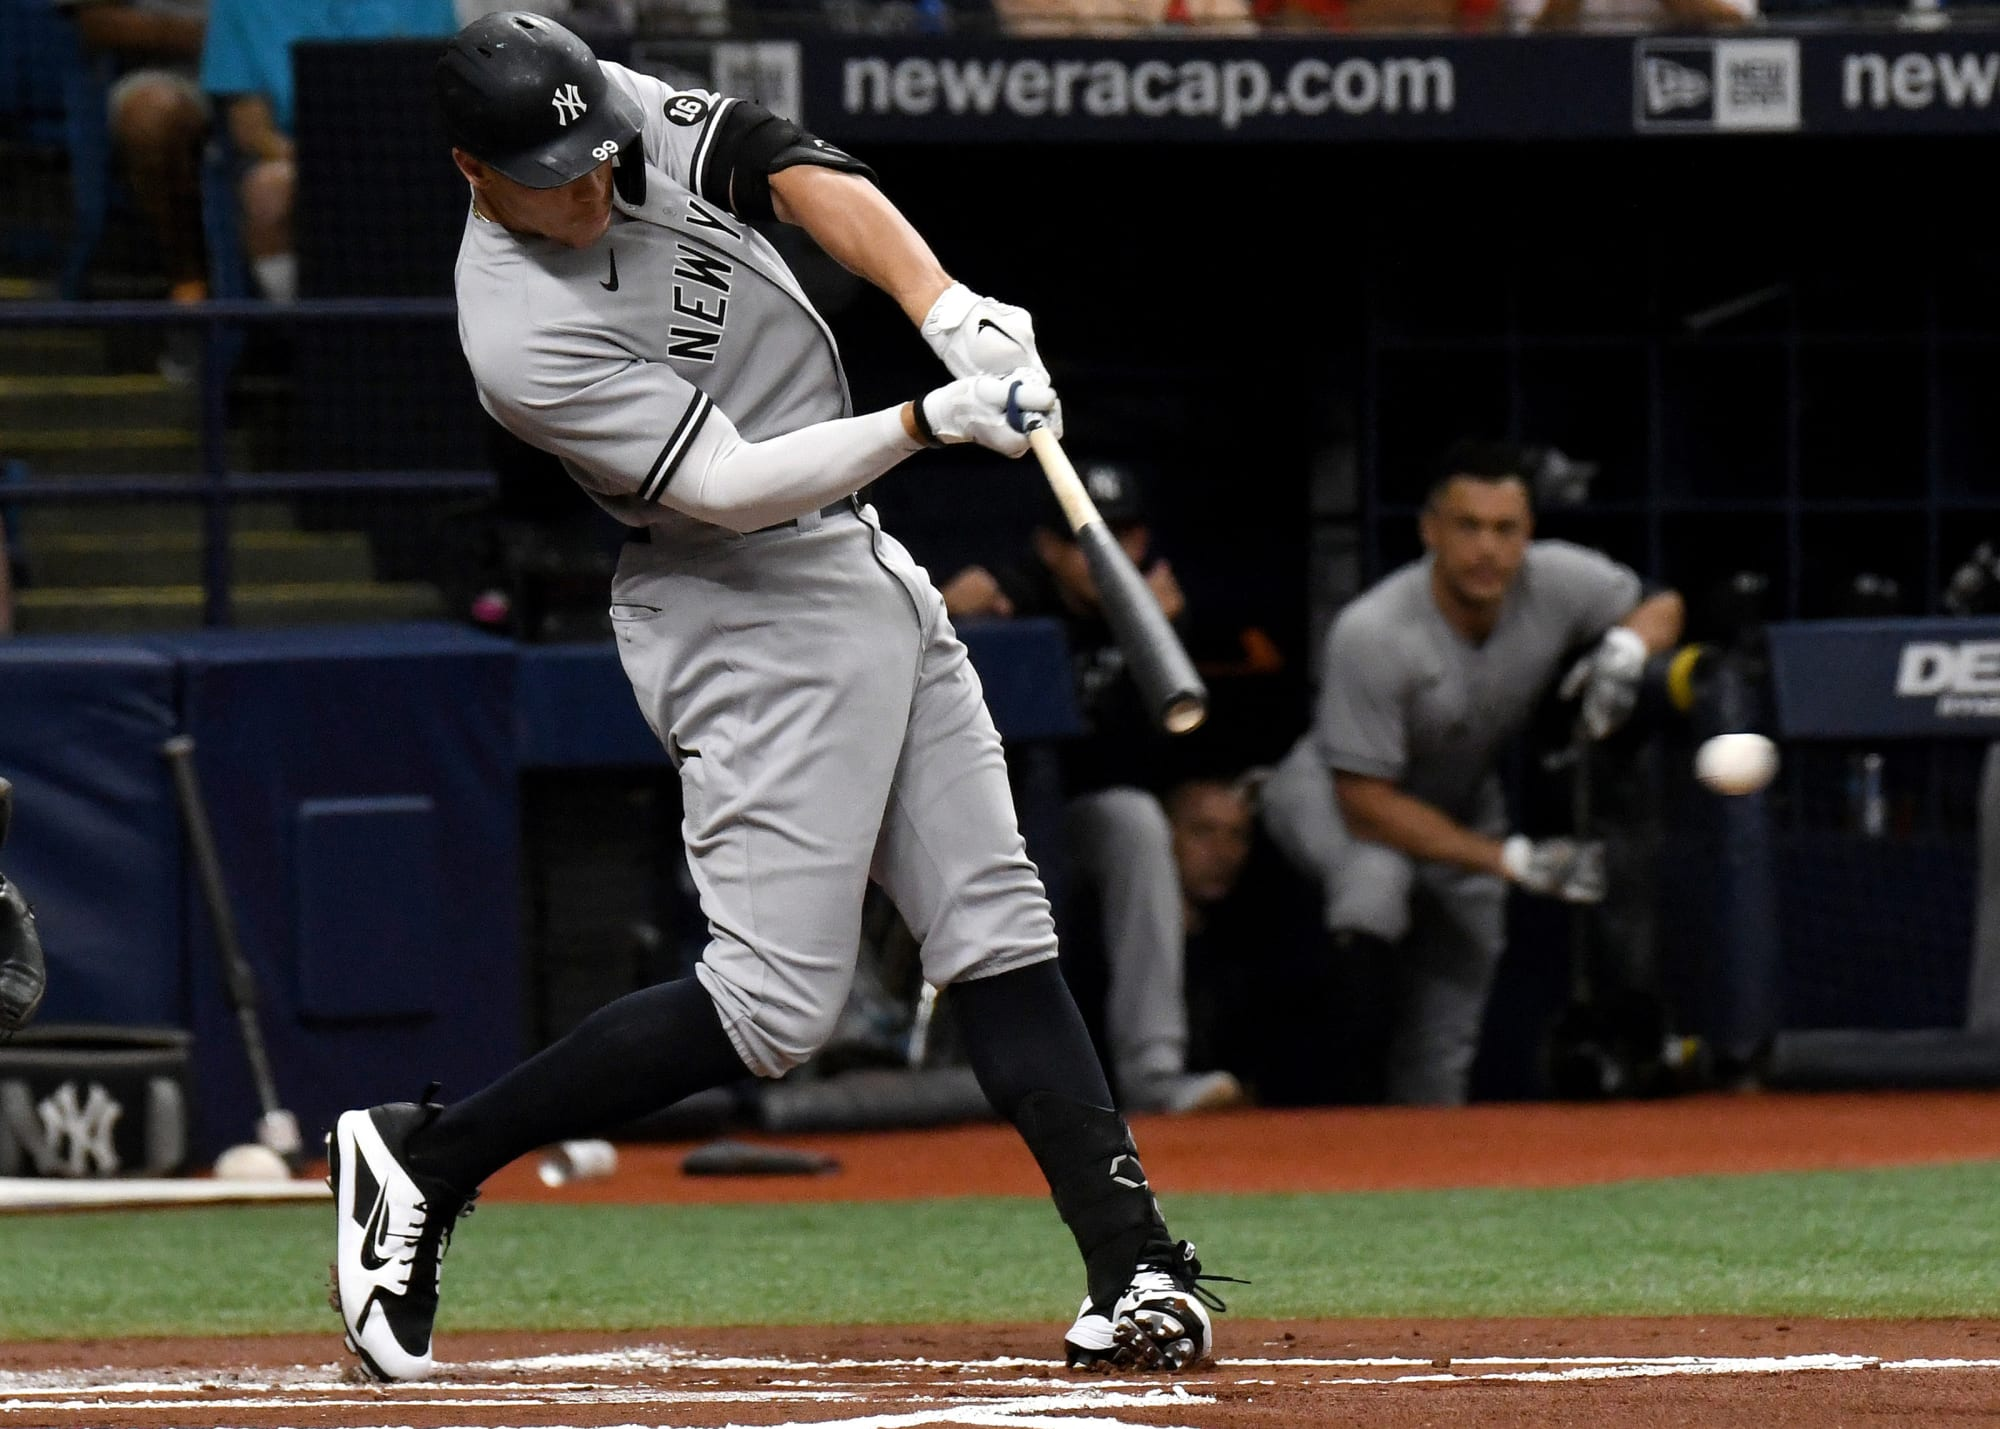 Here's why Aaron Judge was removed from the Yankees line-up